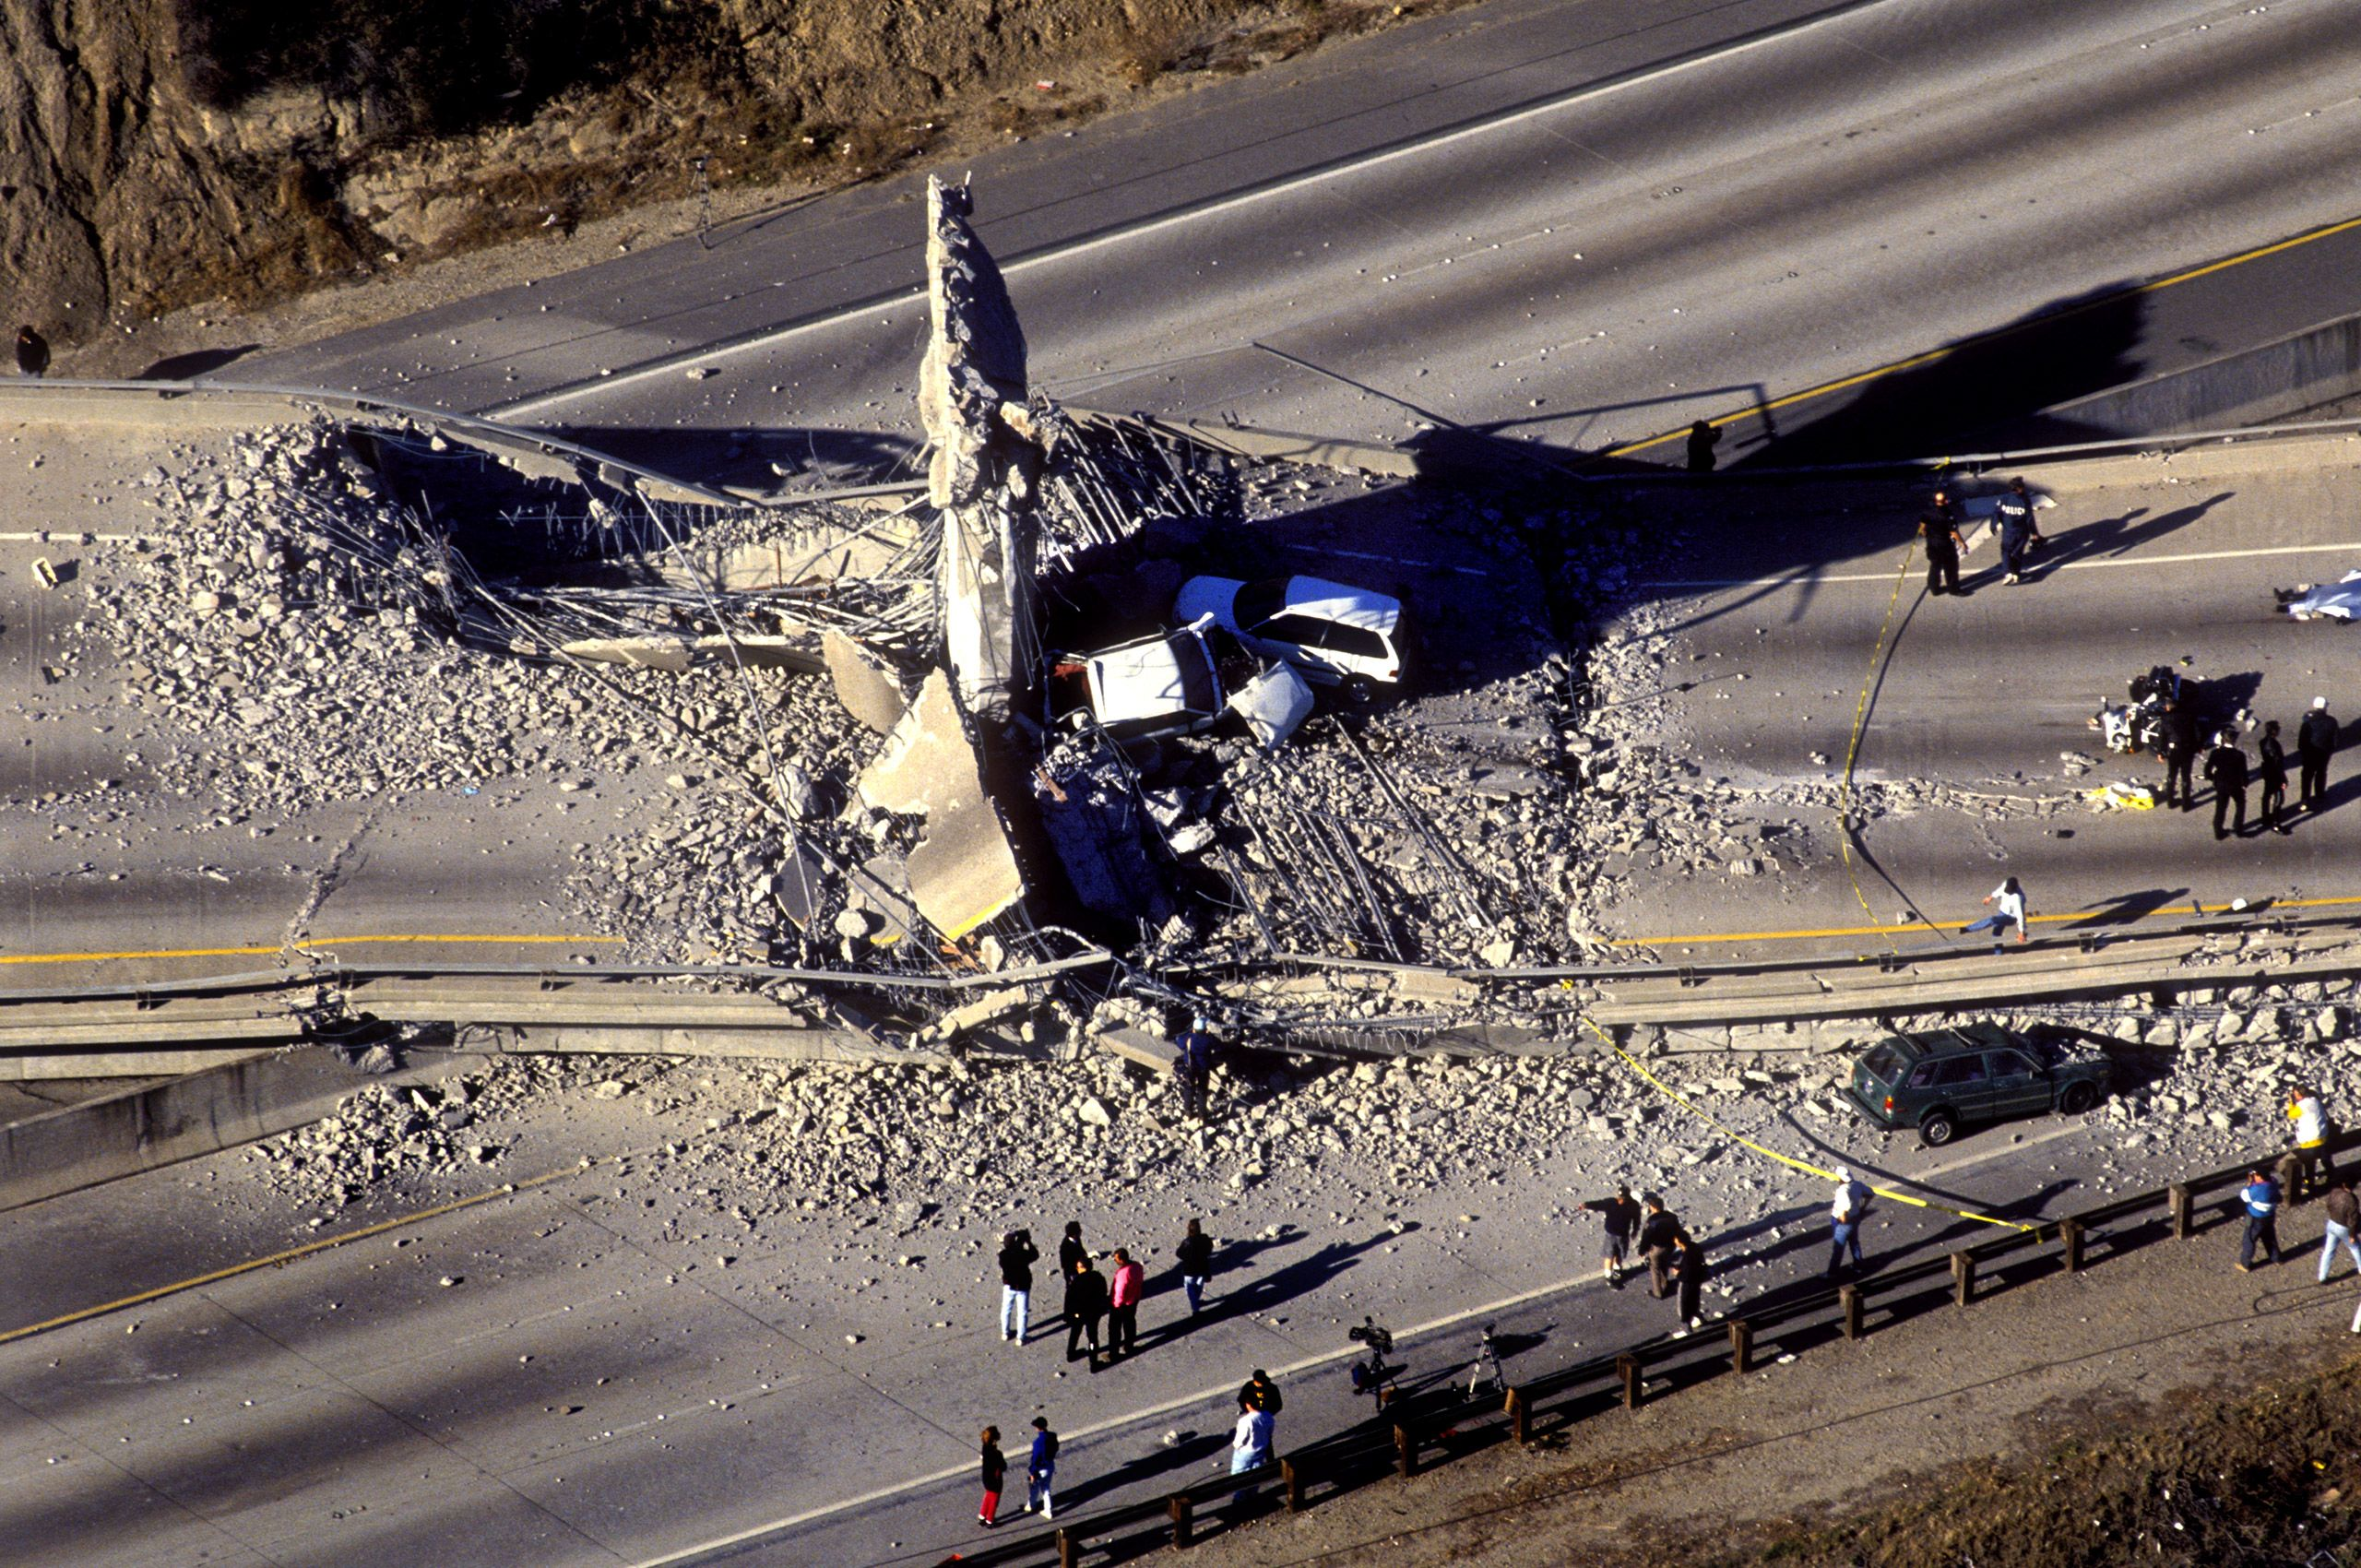 06Northridge-1994-Earthquake-Collapsed-Freeway-Ramp-where-Motor-Officer-Killed-Helicopter-View_.jpg